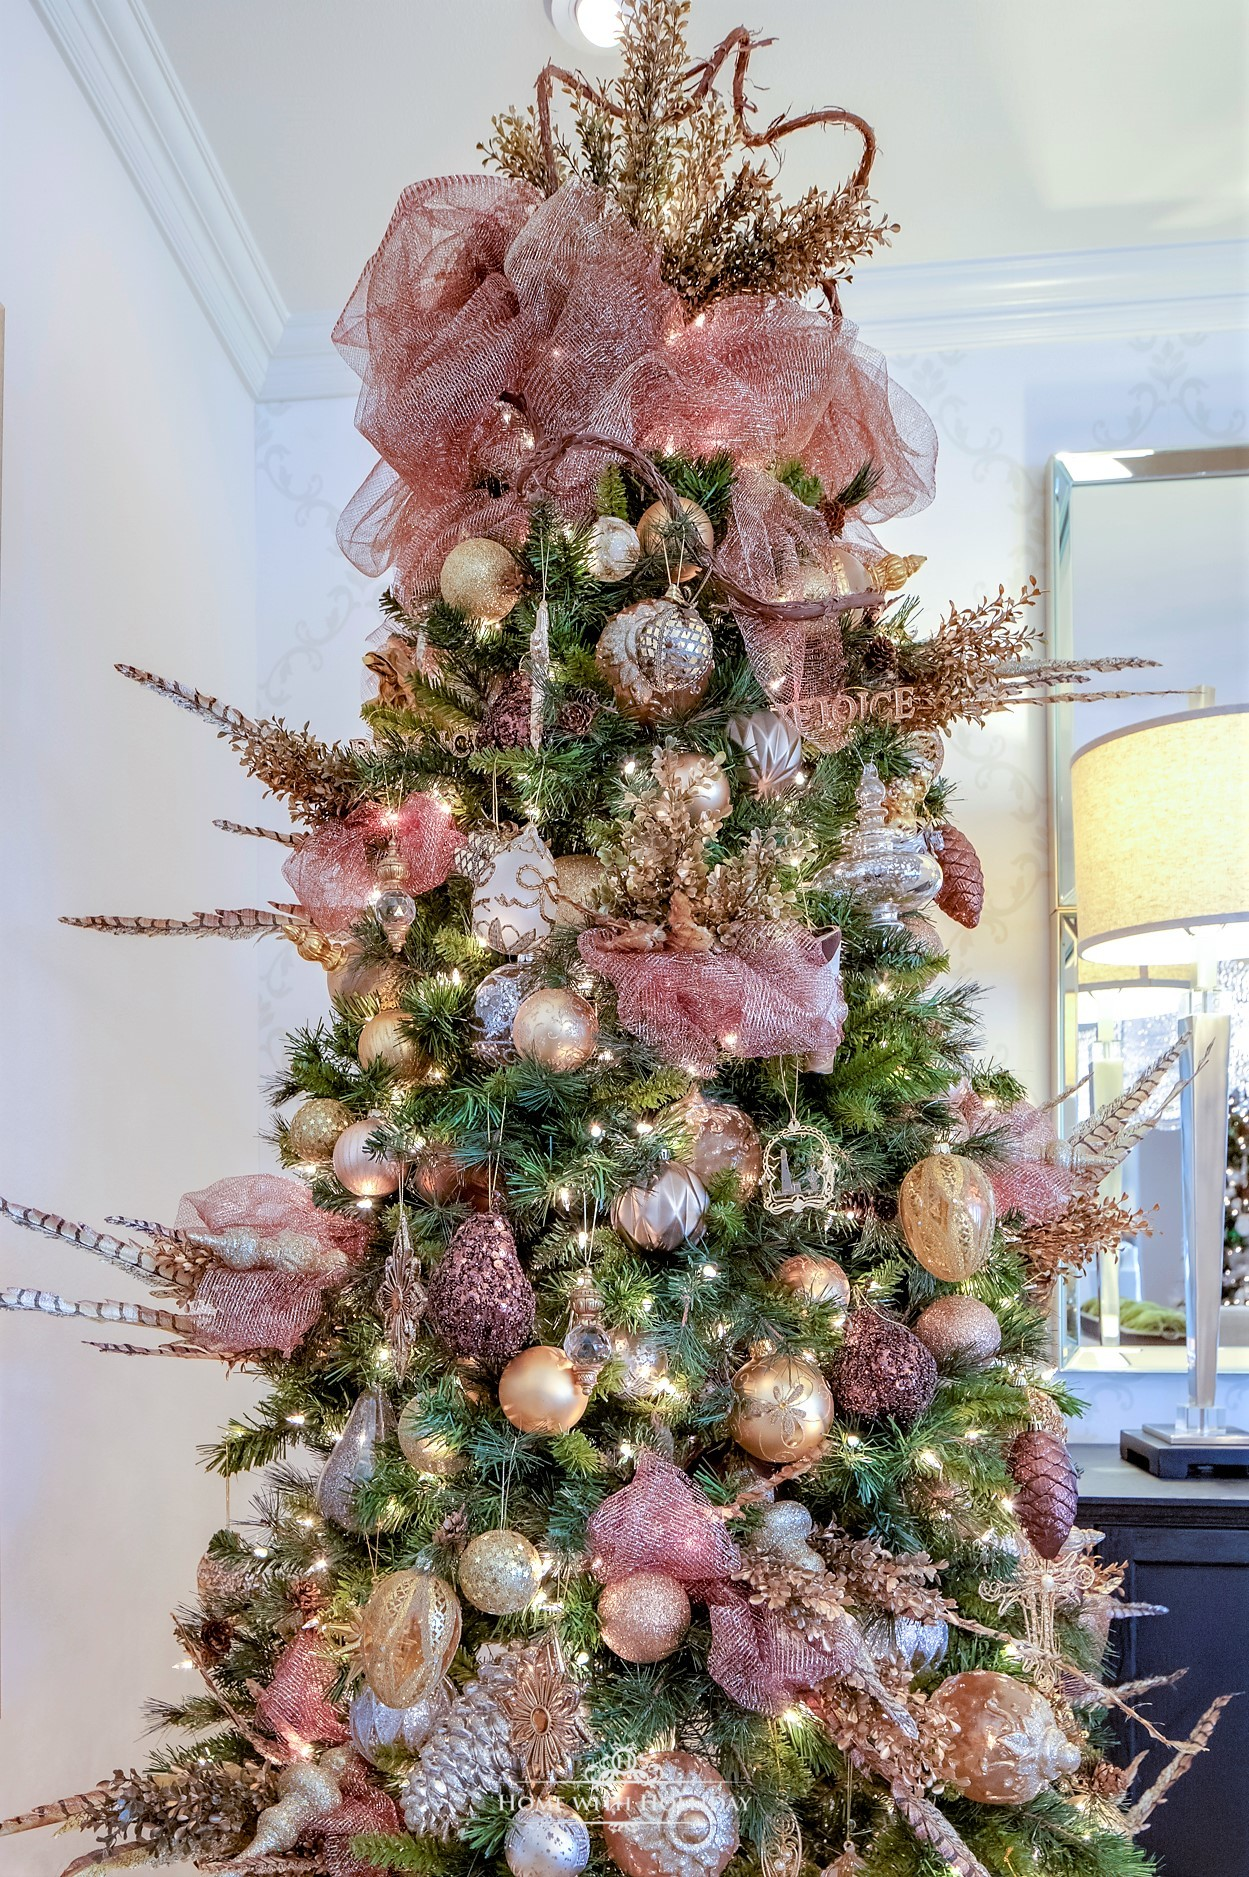 My Mixed Metallic Christmas Tree - Home with Holliday